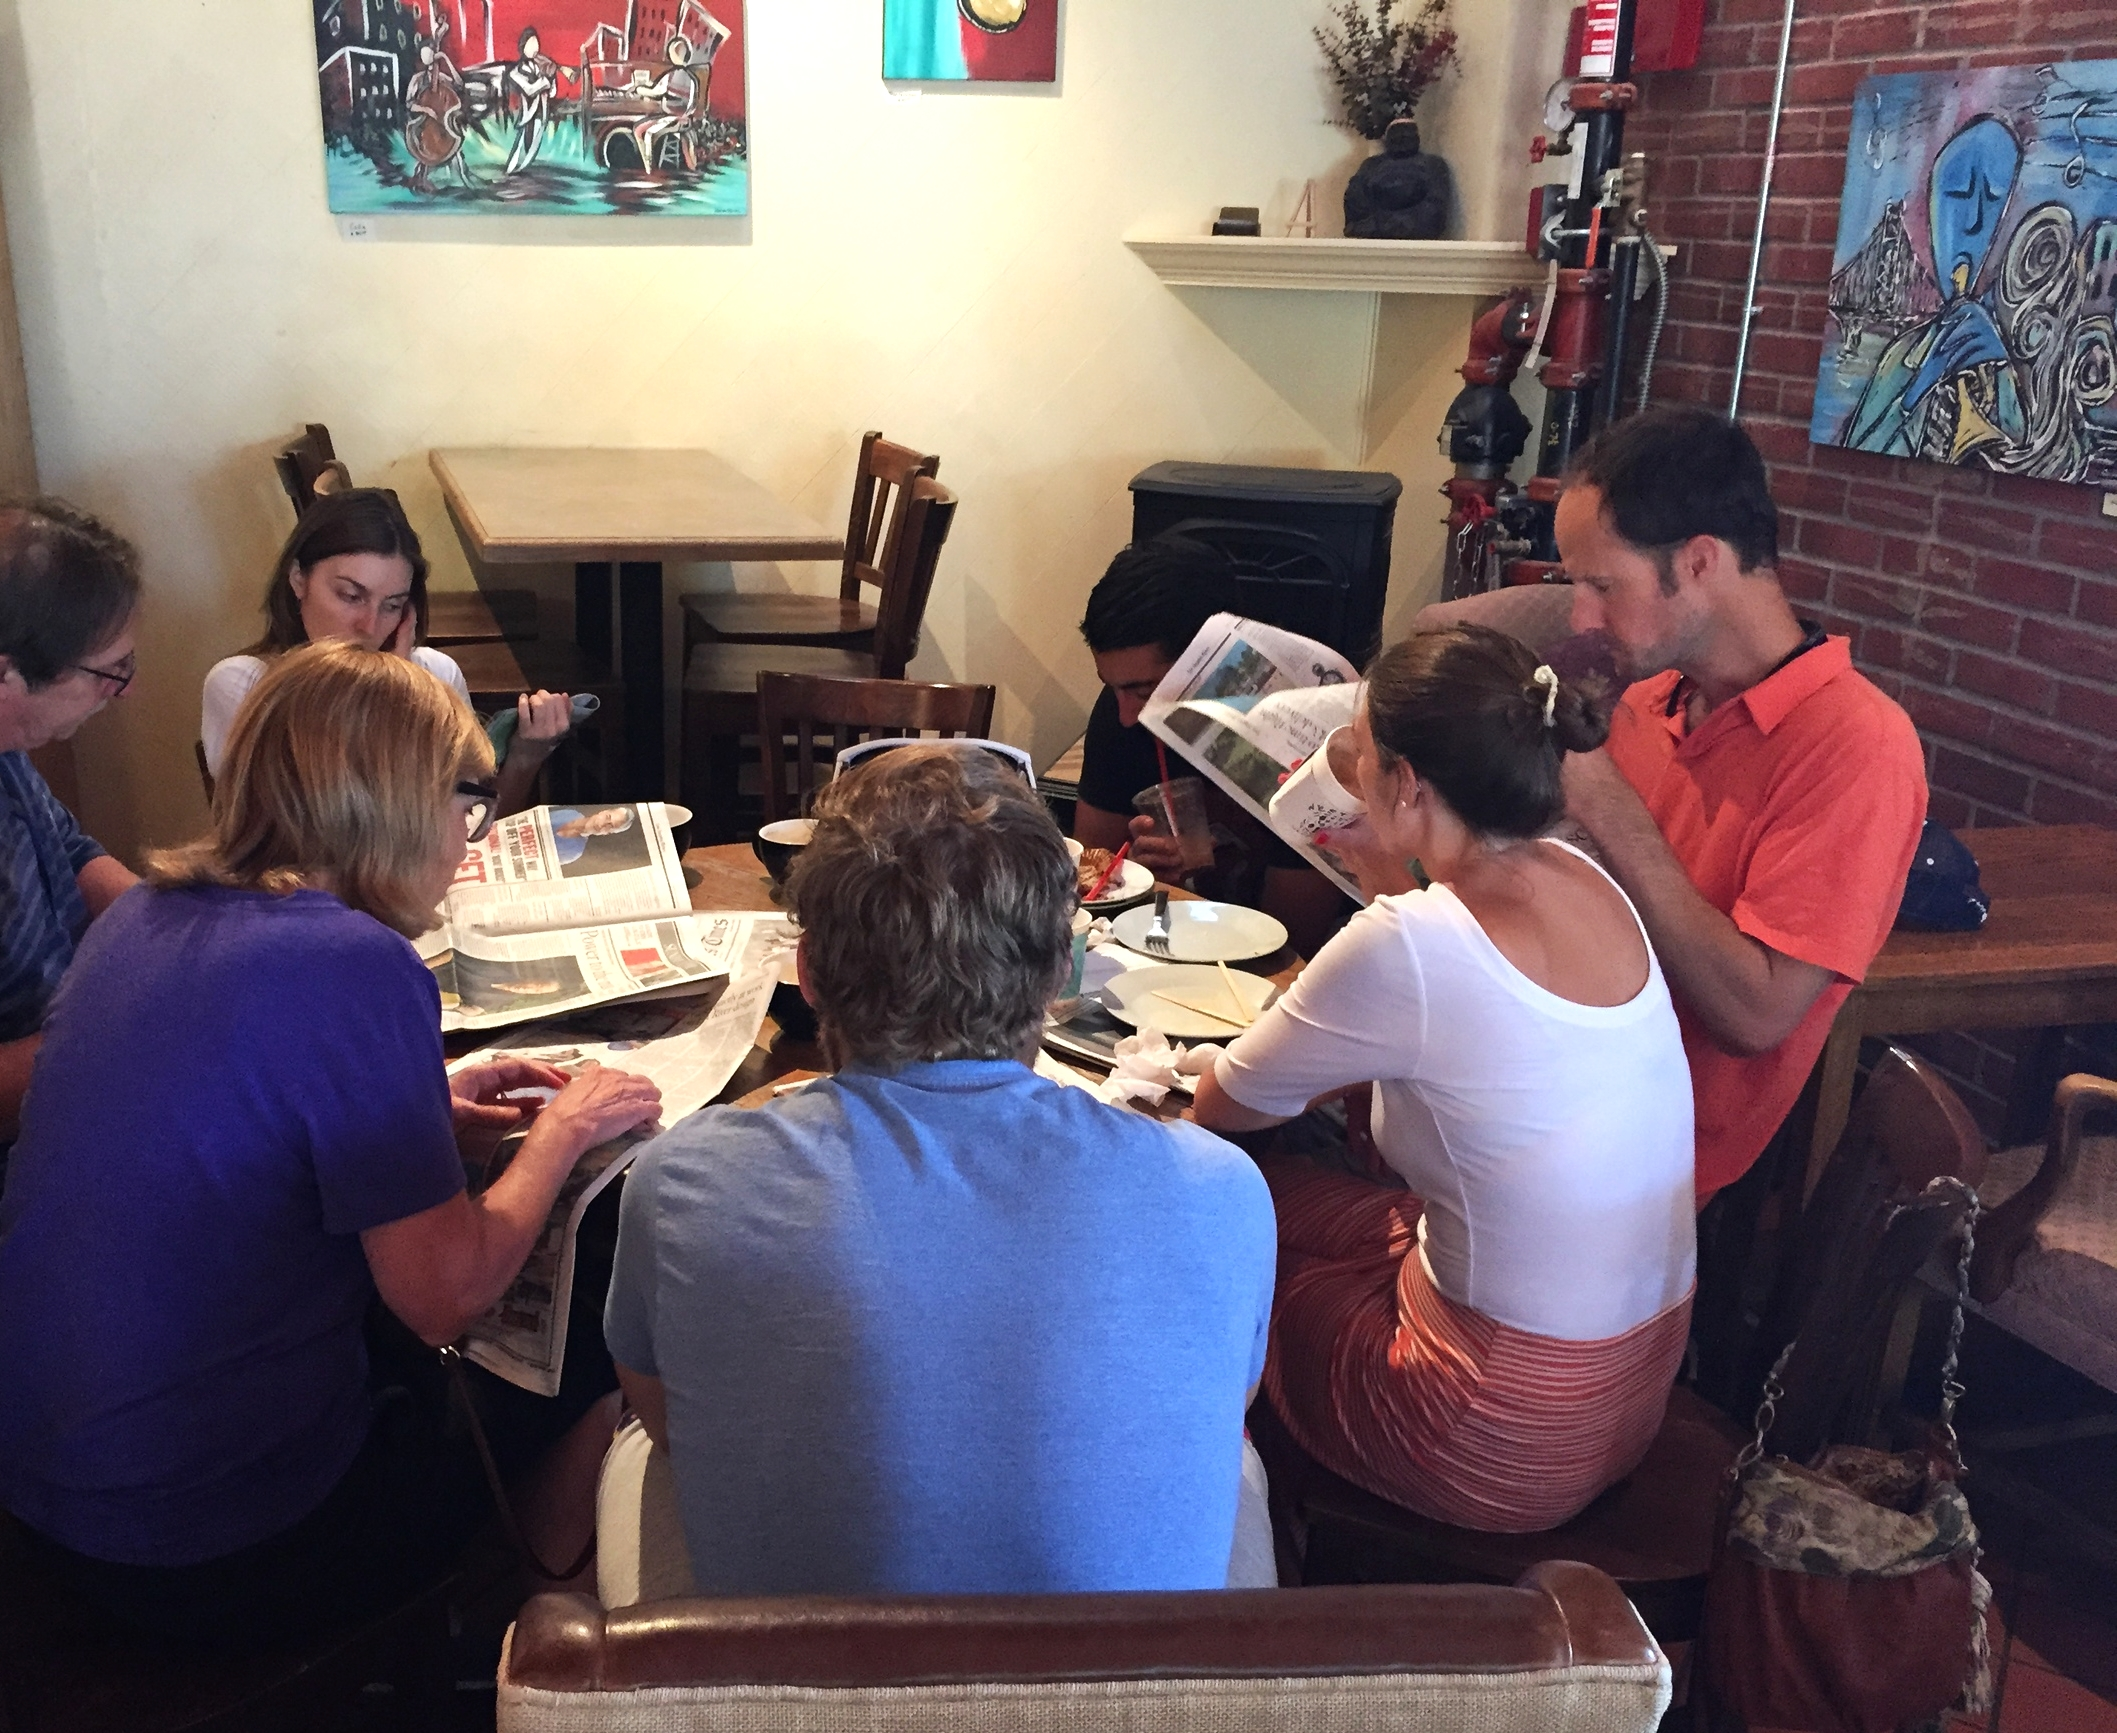 Family relaxing at West End Cafe